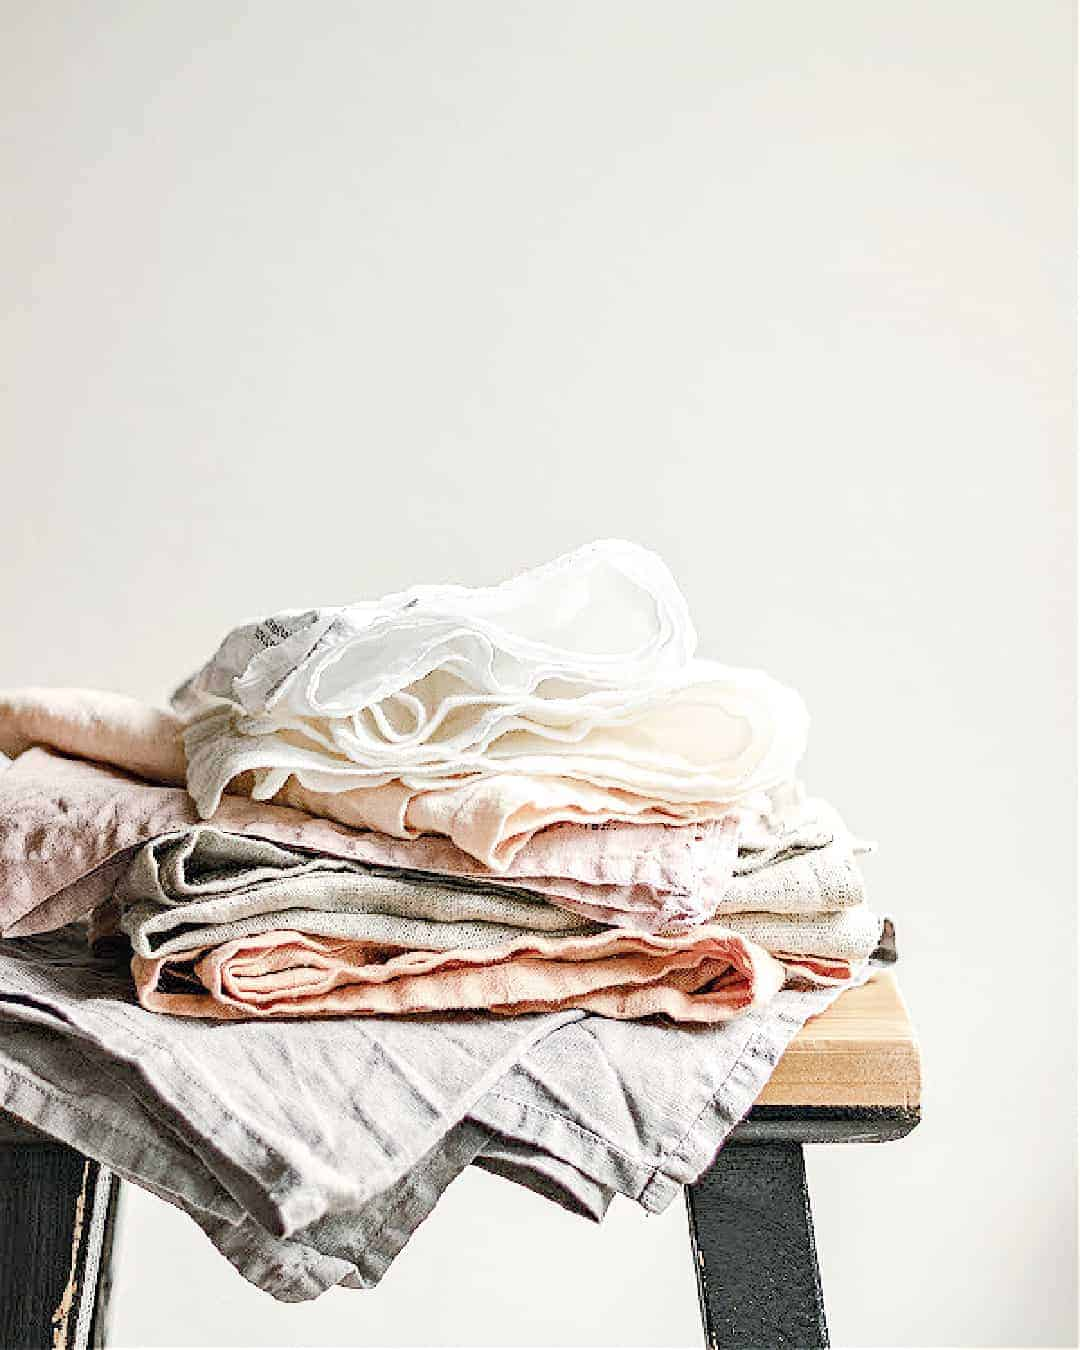 A pile of stuff to get rid of after decluttering